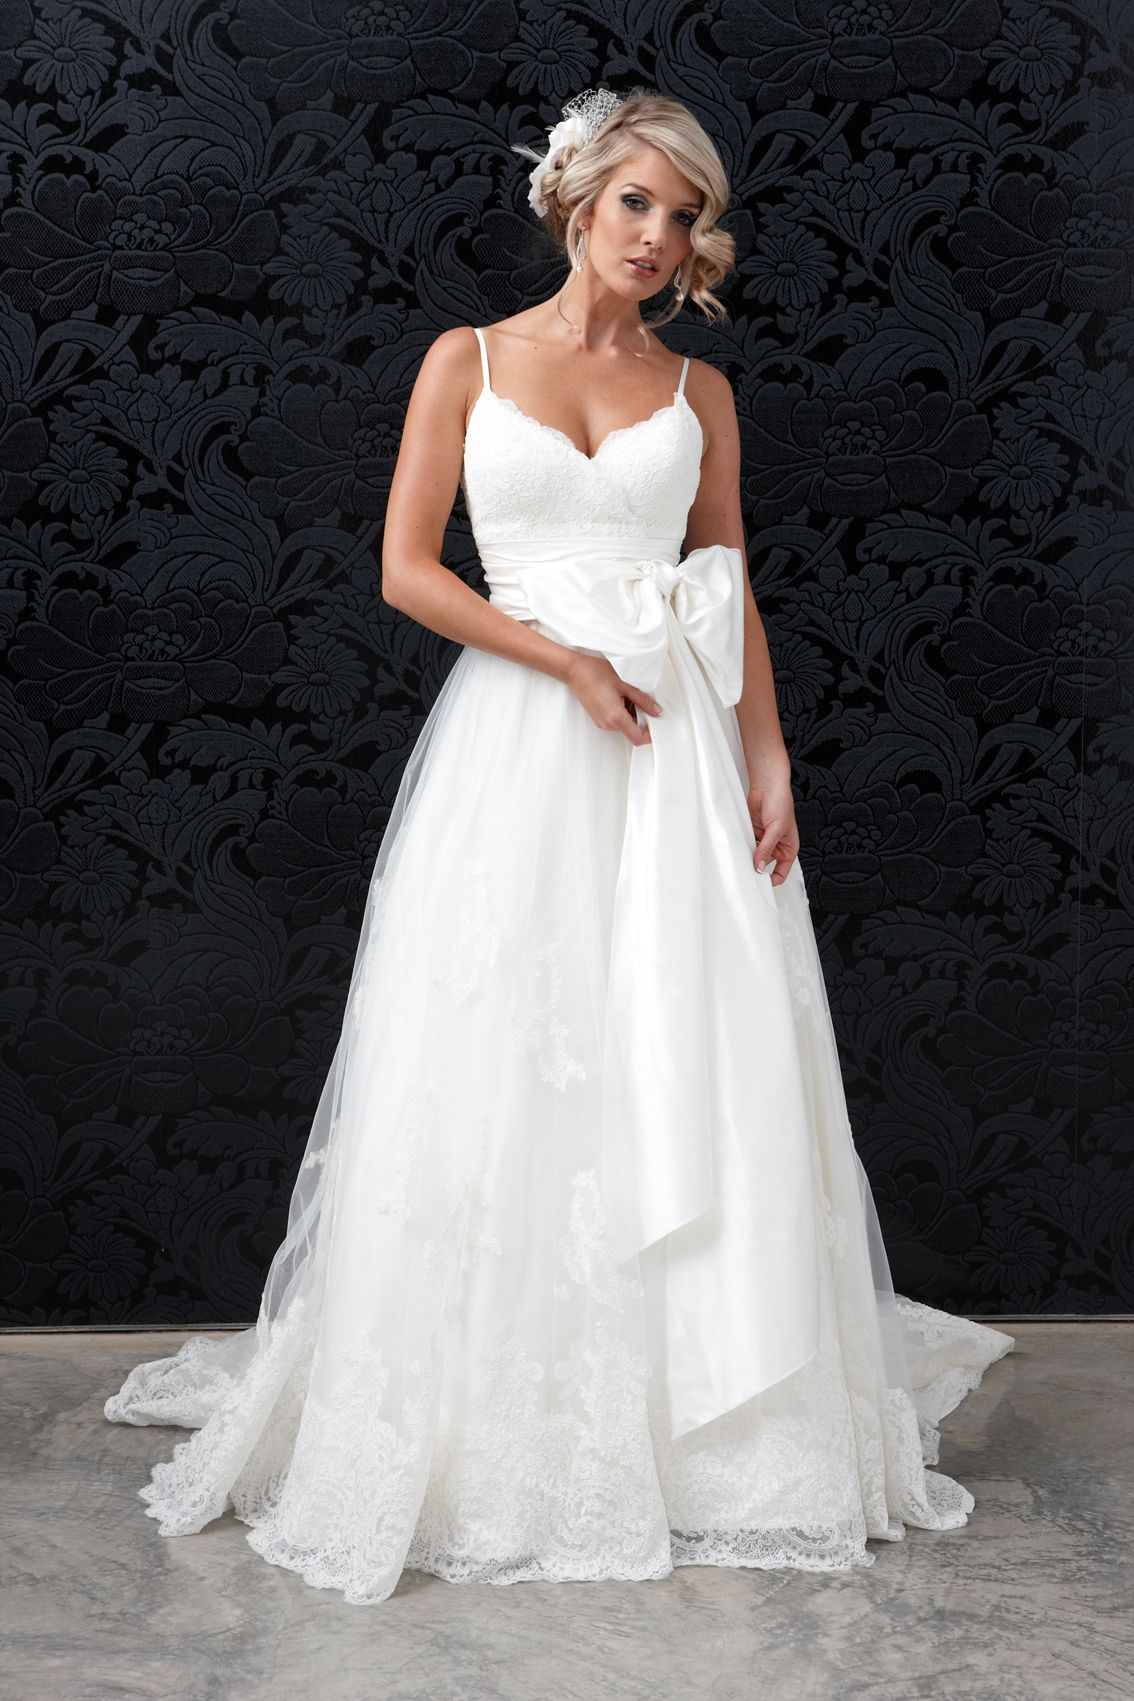 Princess Ballgown Lace Silk Wedding Gown With Dupion Tulle